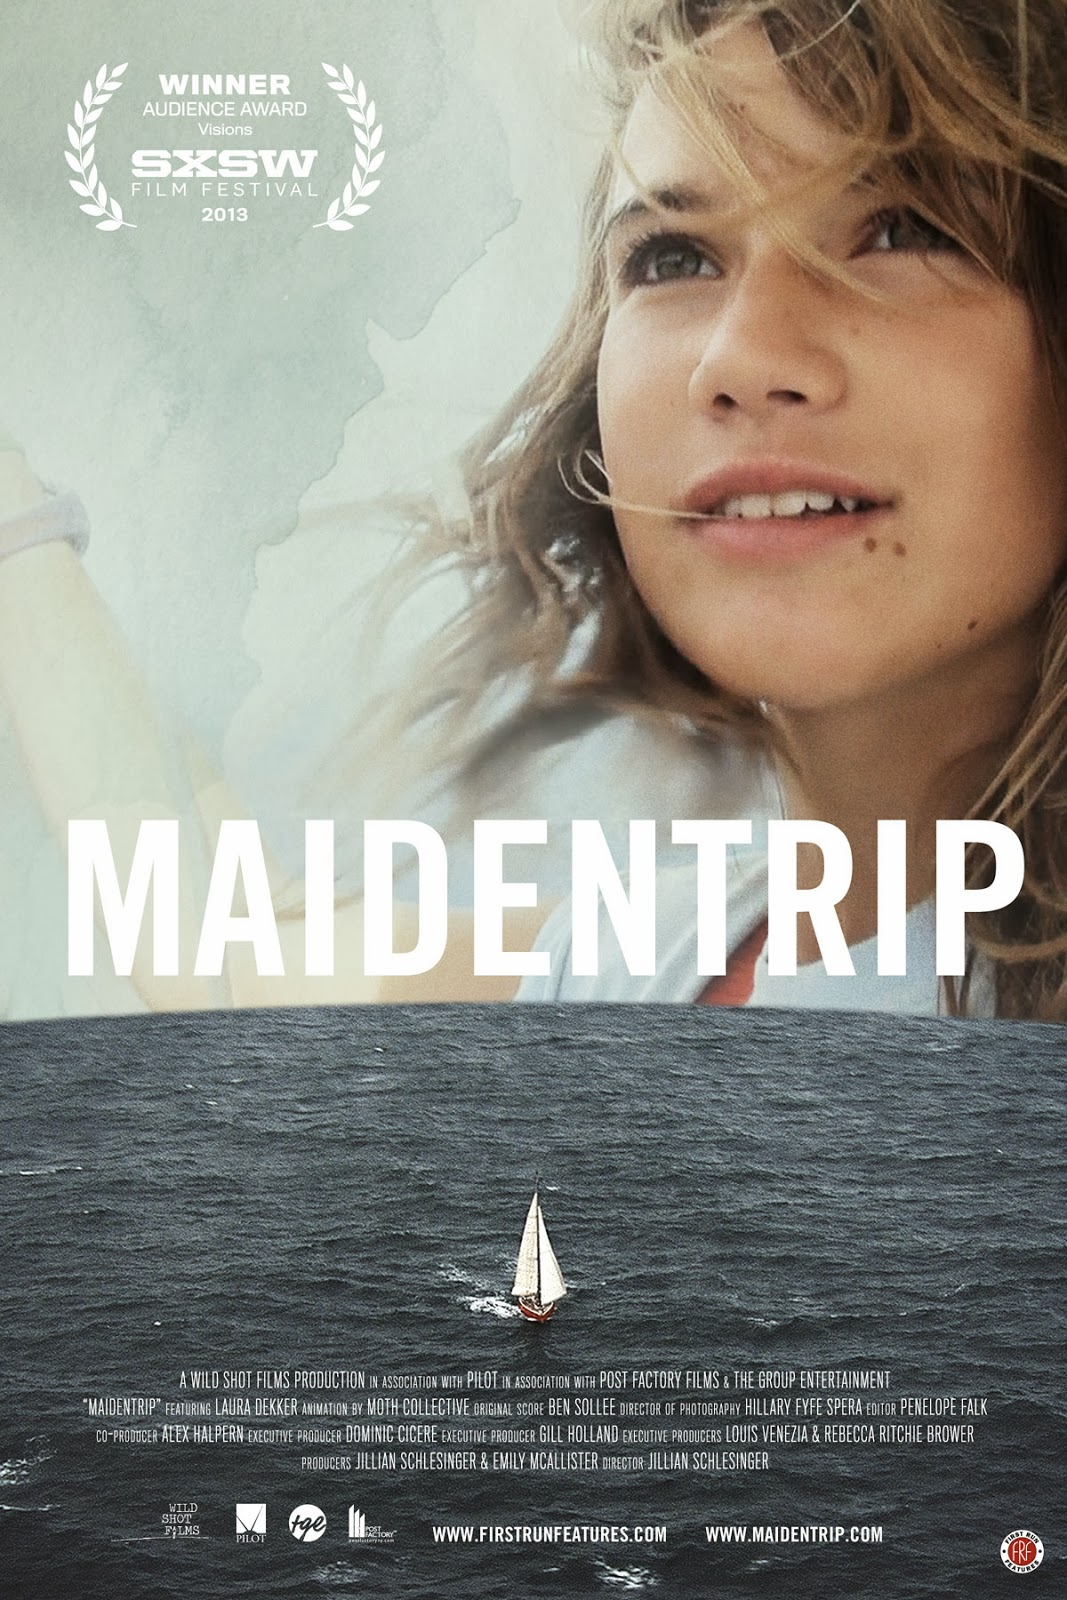 Maidentrip (2013)